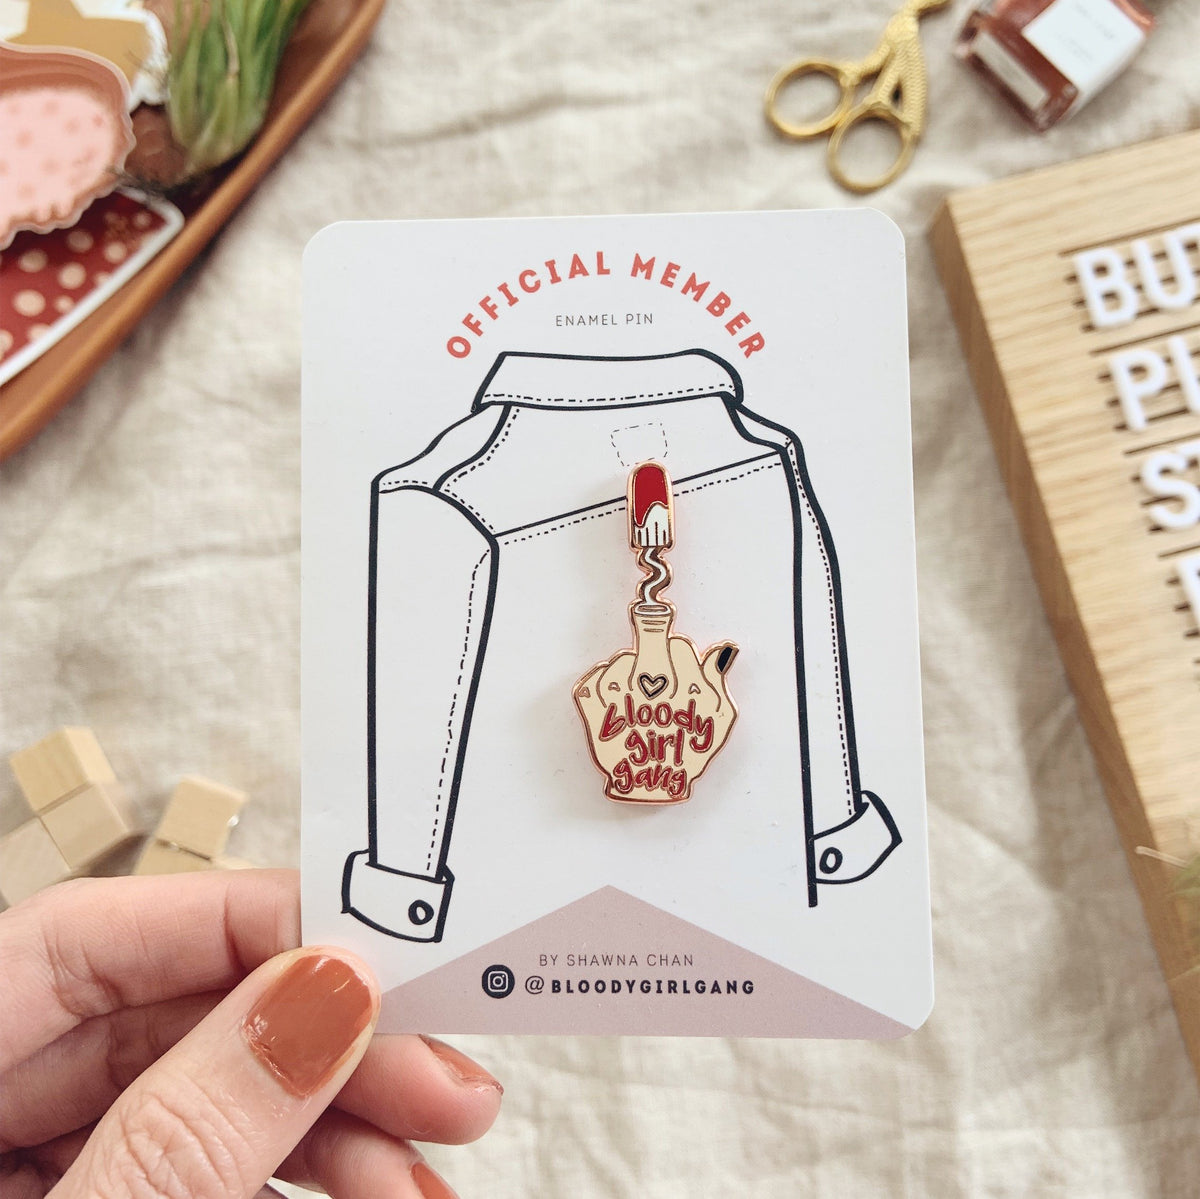 Bloody Girl Gang Official Member Hard Enamel Pin - F Off My Body